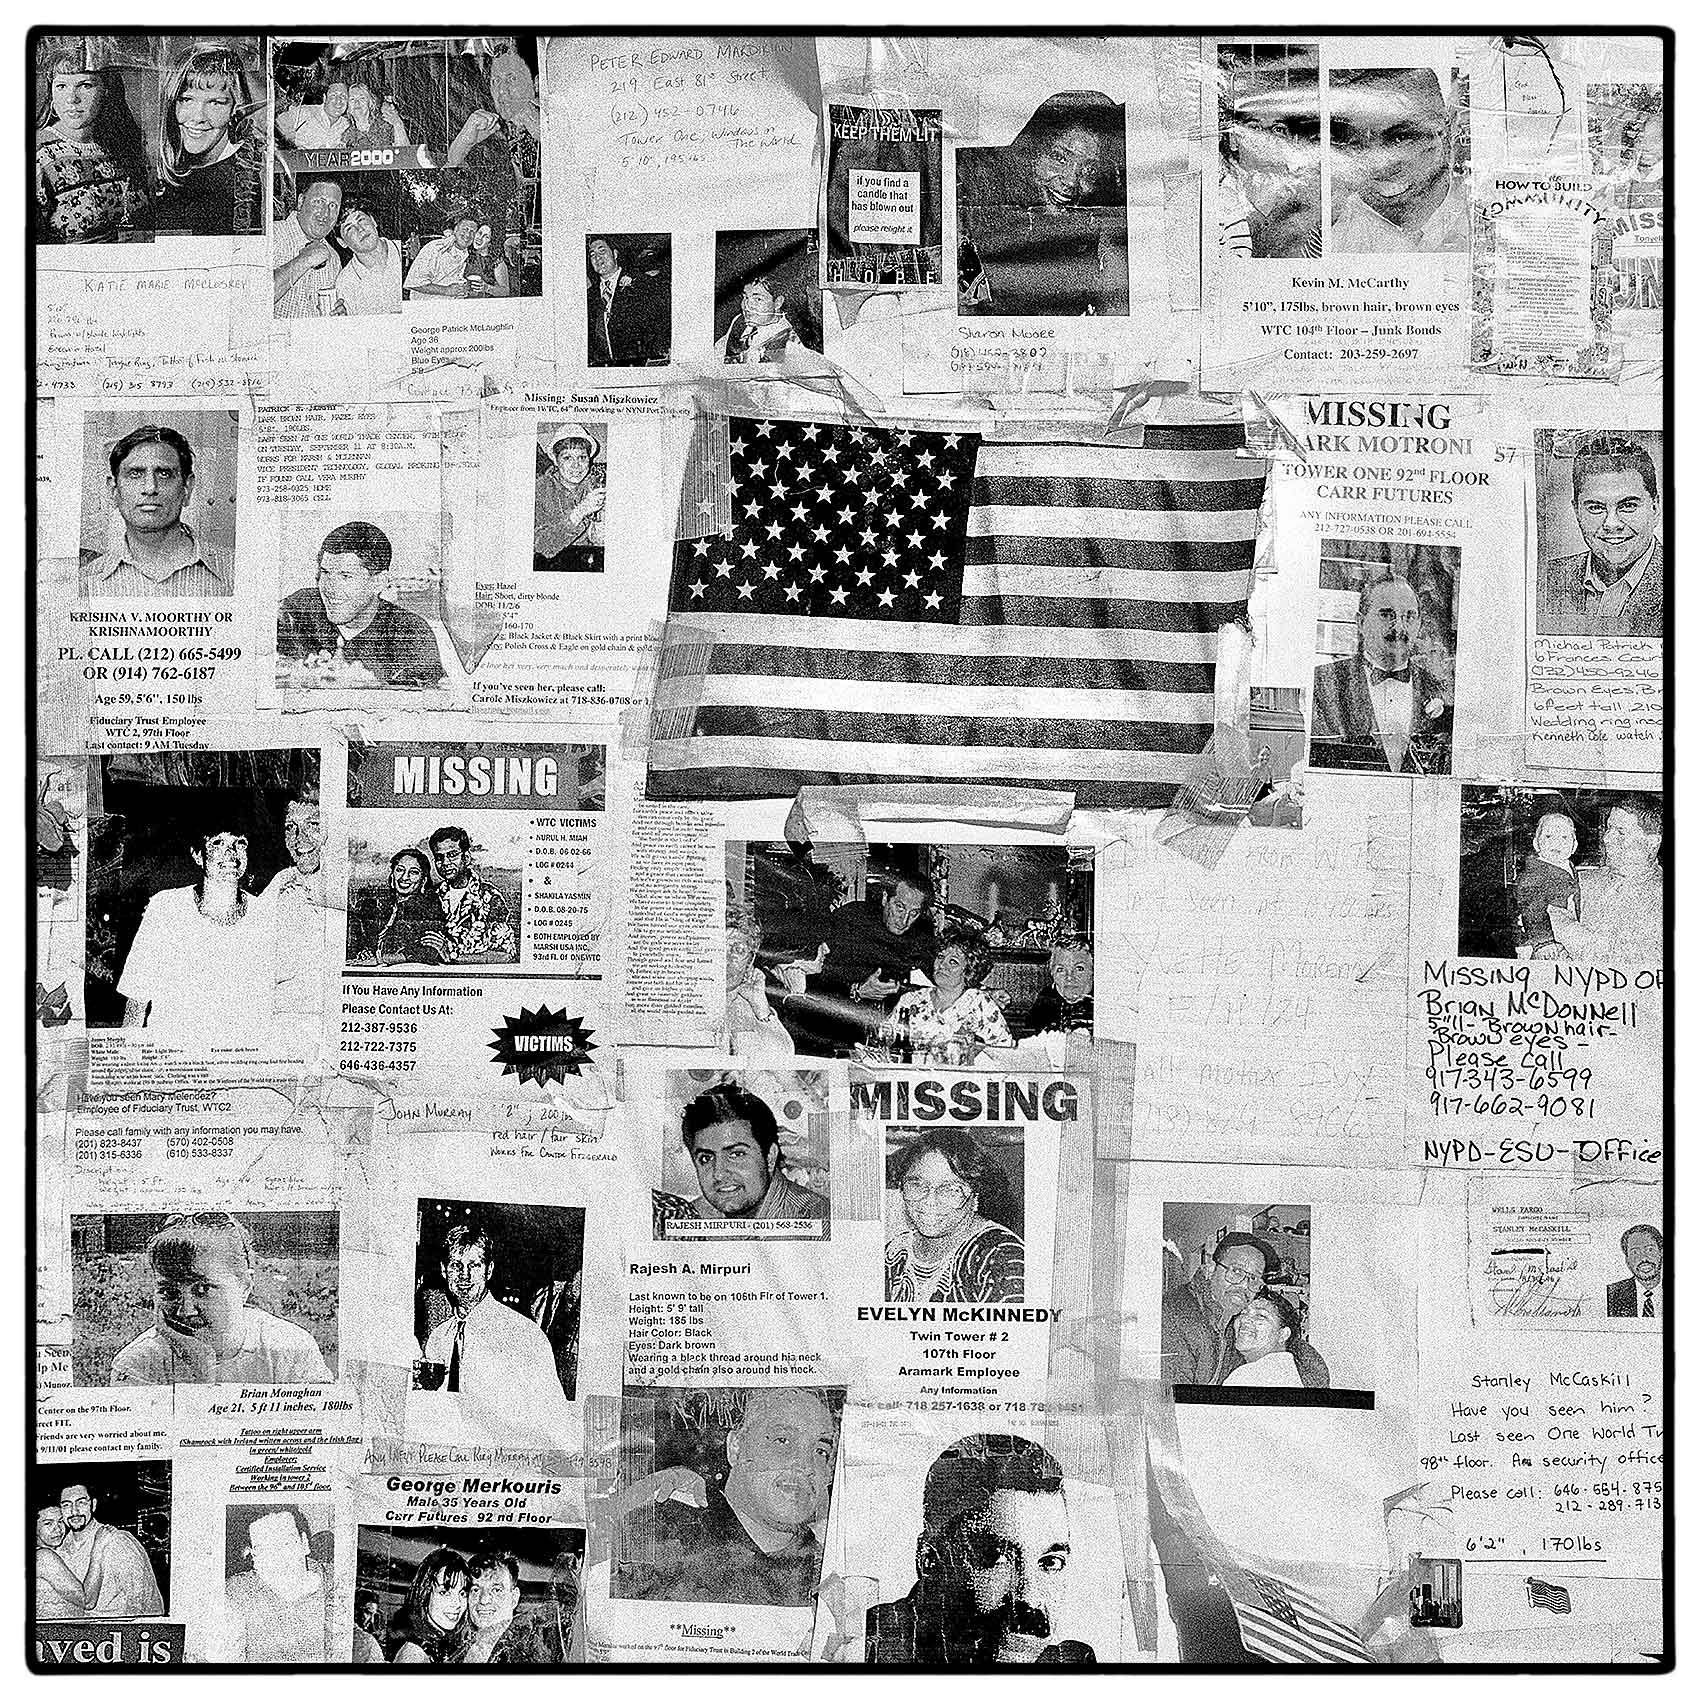 a-wall-of-posters-of-the-missing-after-the-twin-towers-collapsed-in-new-york-on-9-11